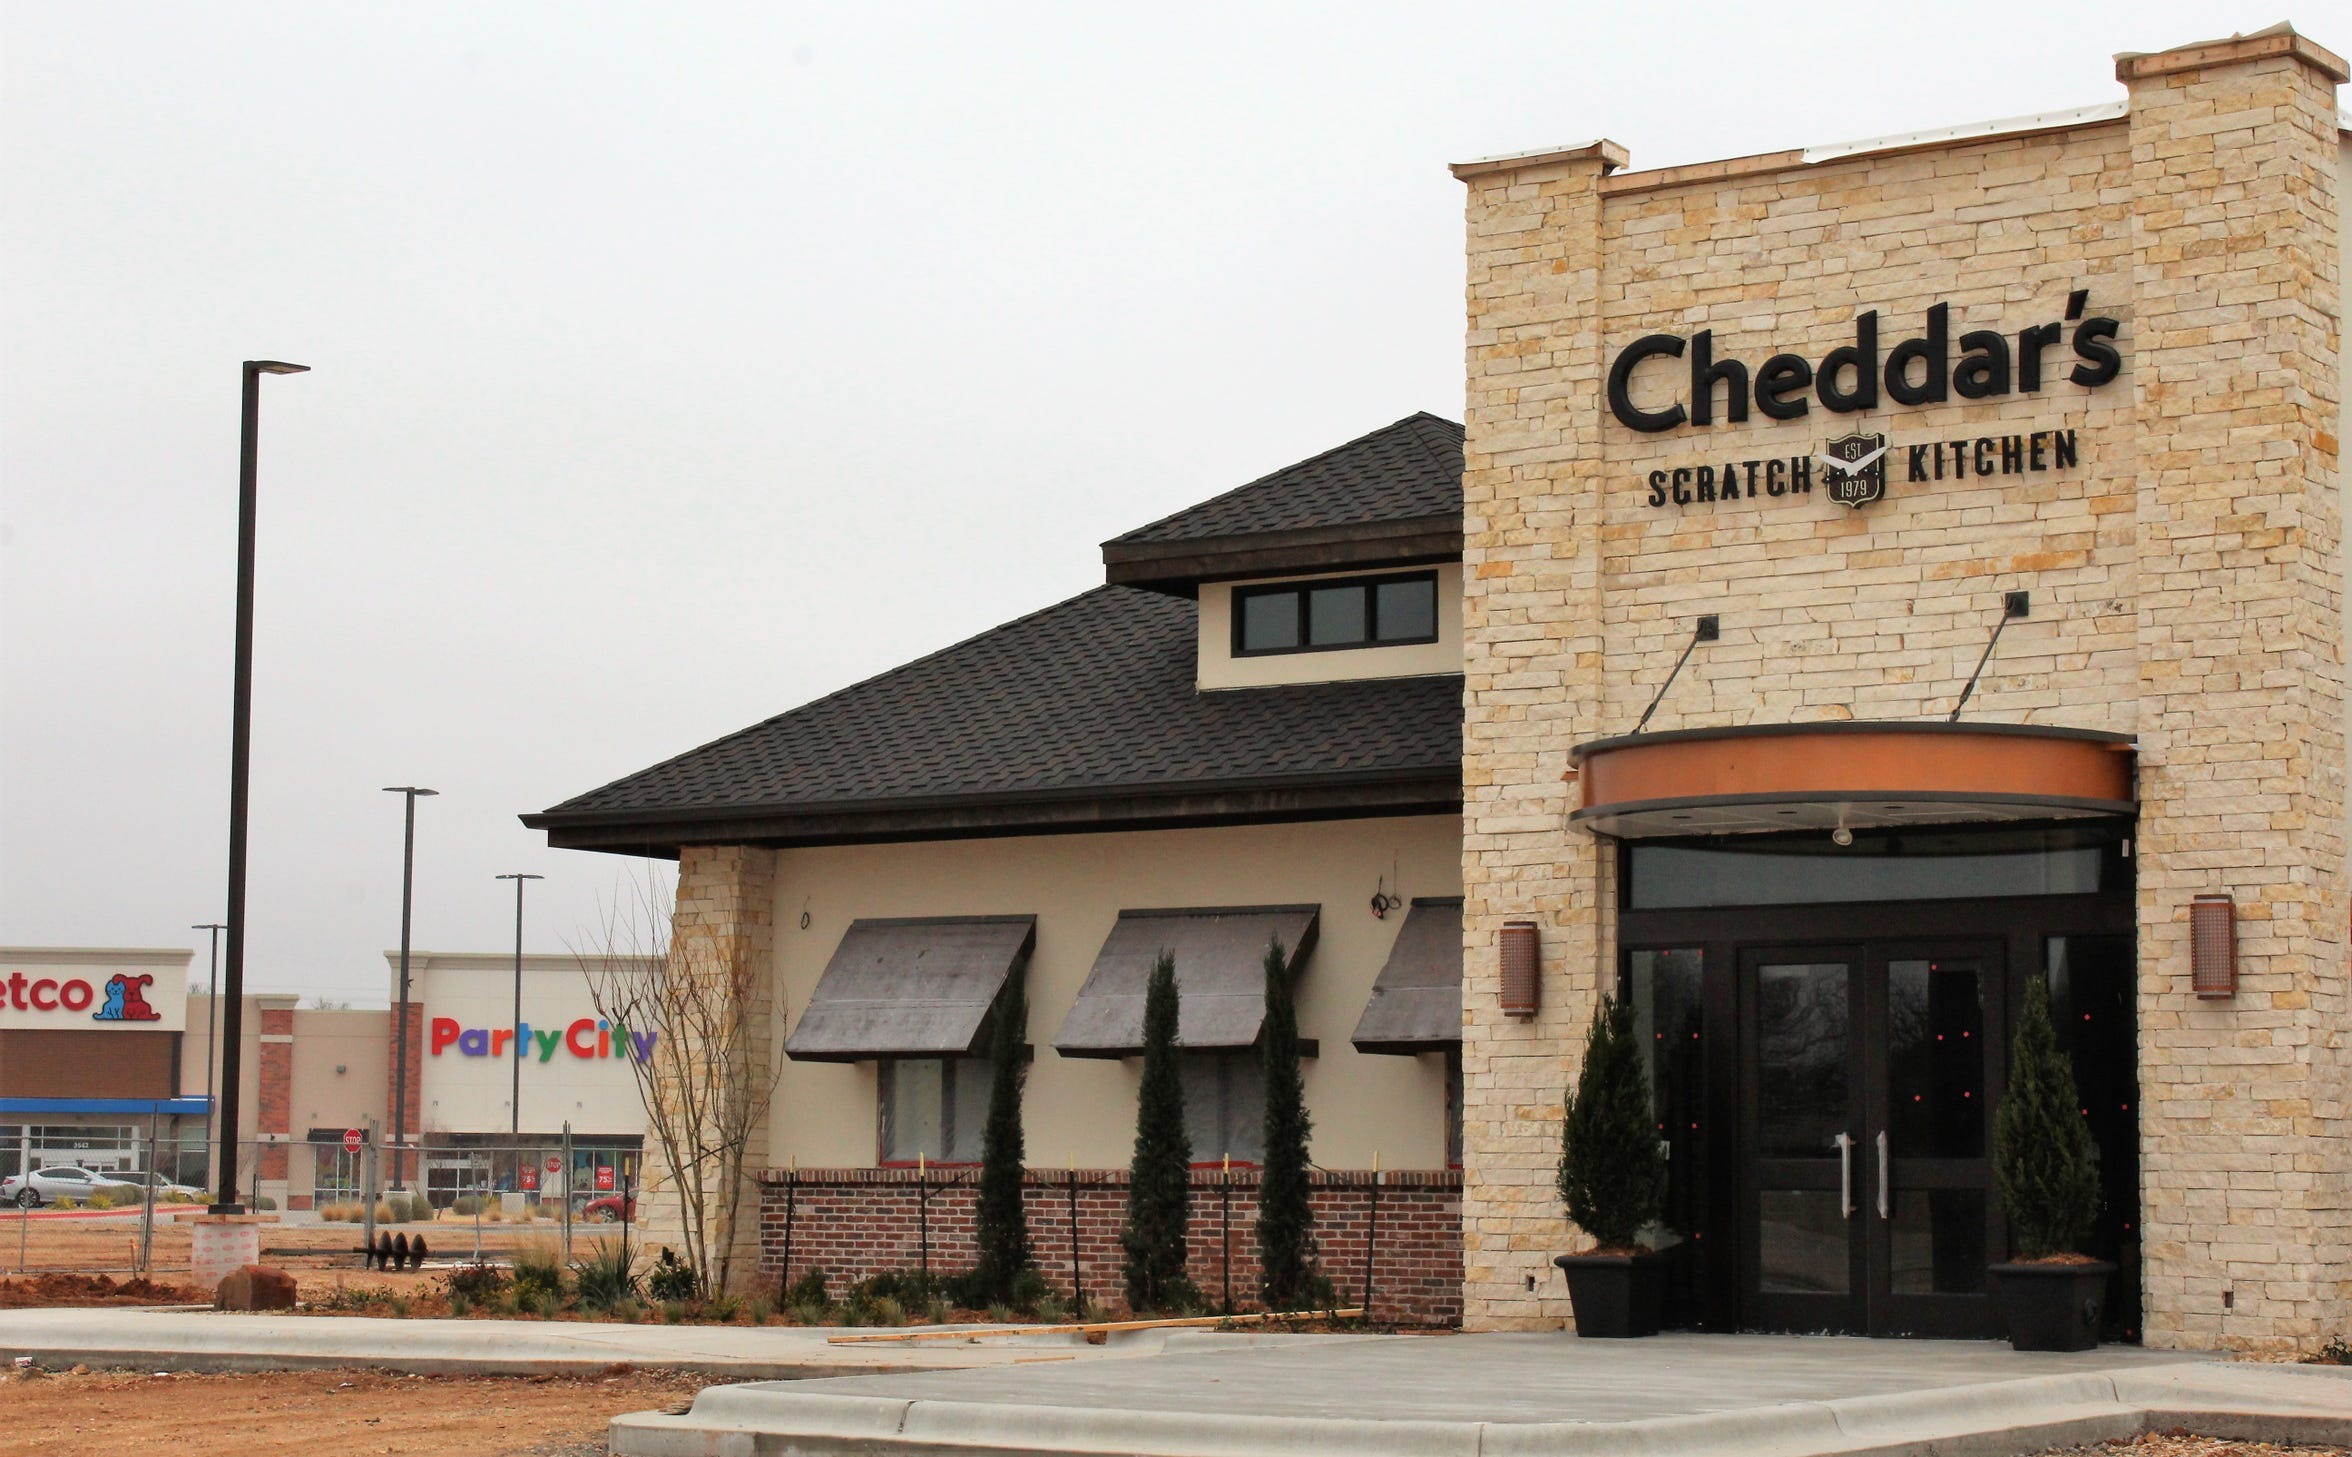 Cheddar's looks close to opening at Shops at Abilene Village. Stores such as Petco and Party City, background, opened in 2018.